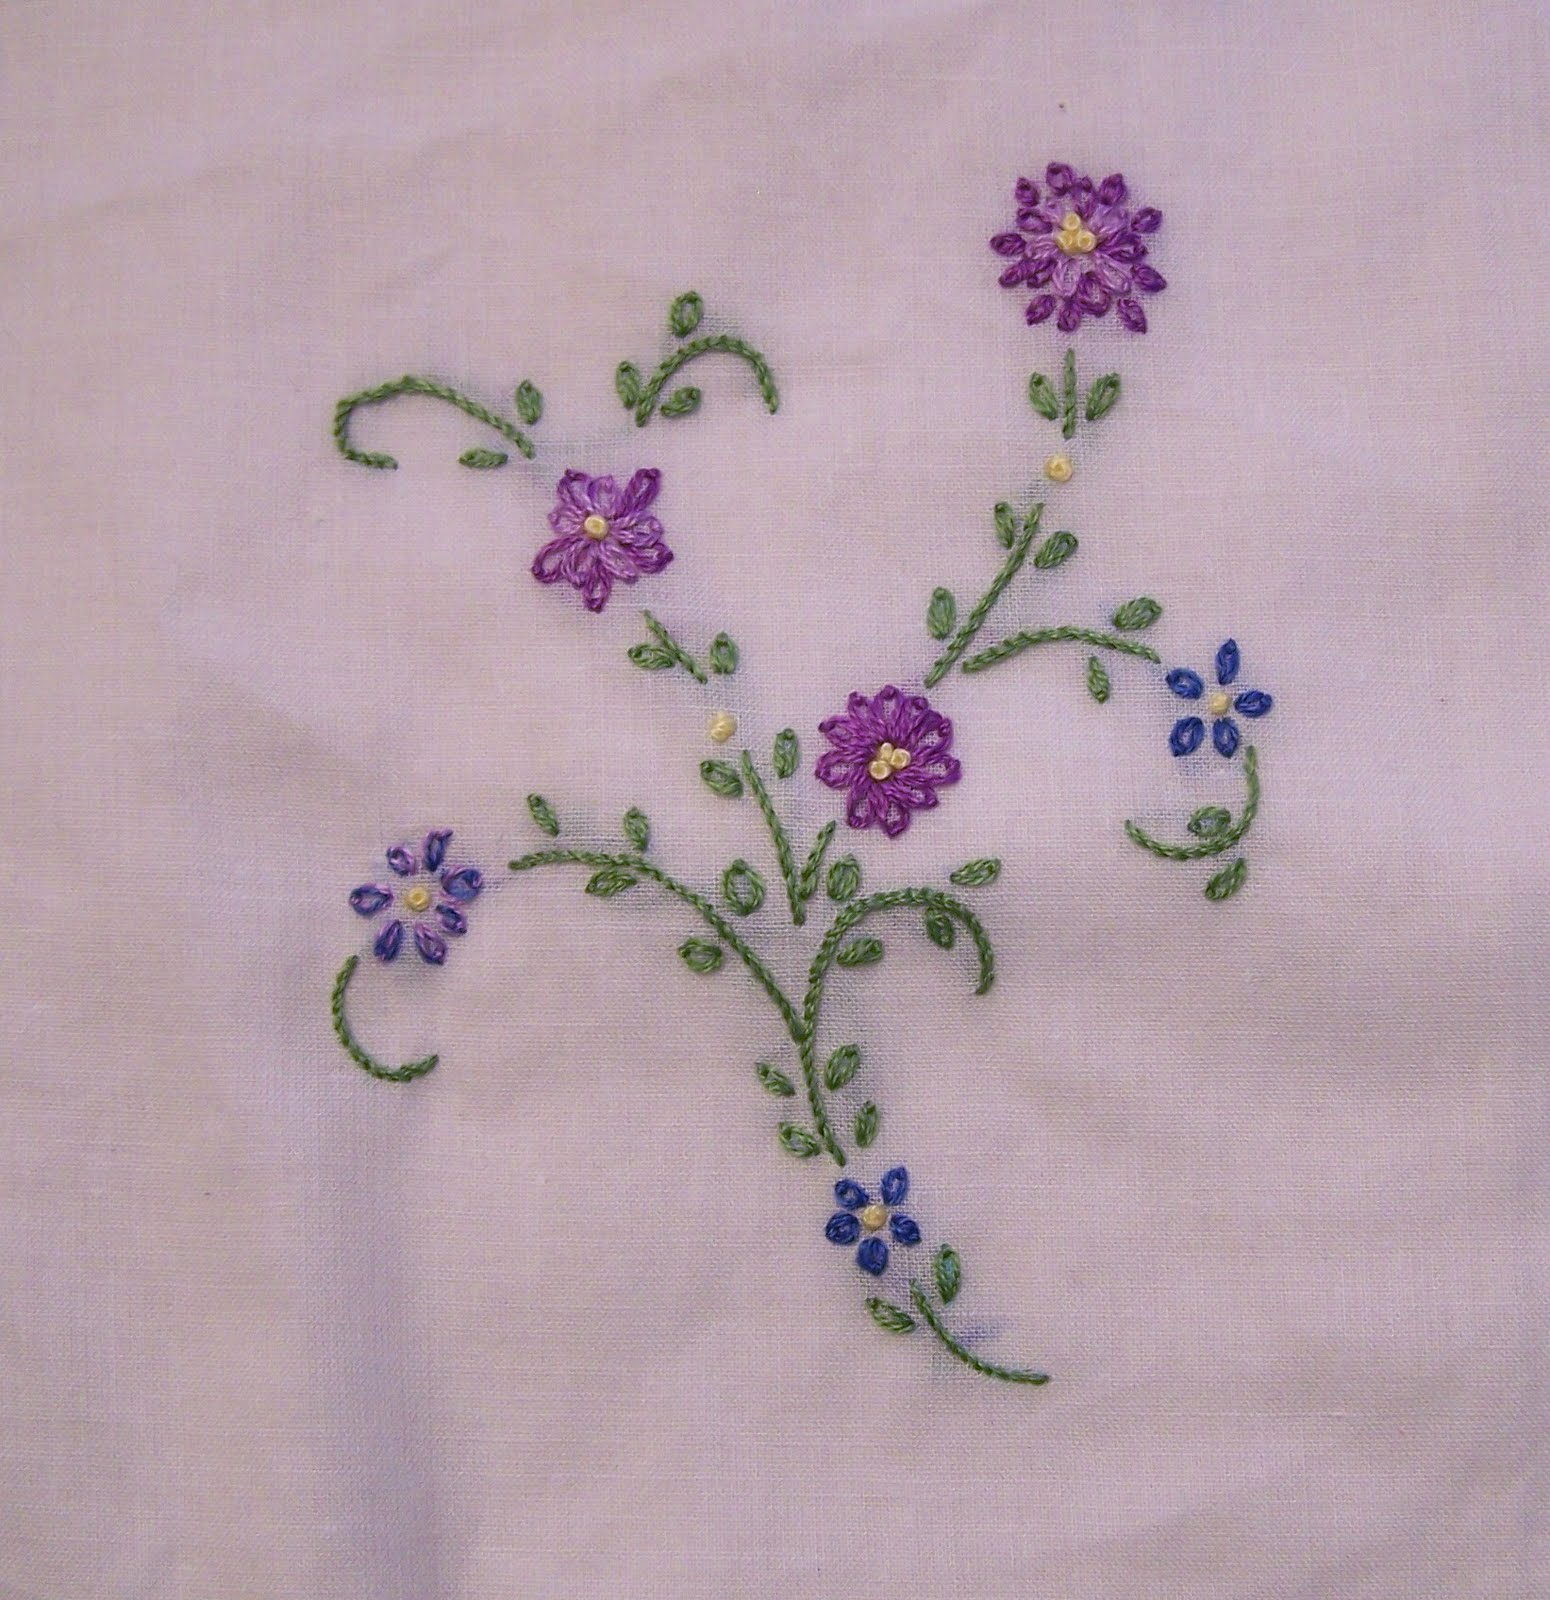 History of embroidery stitches embroidery designs